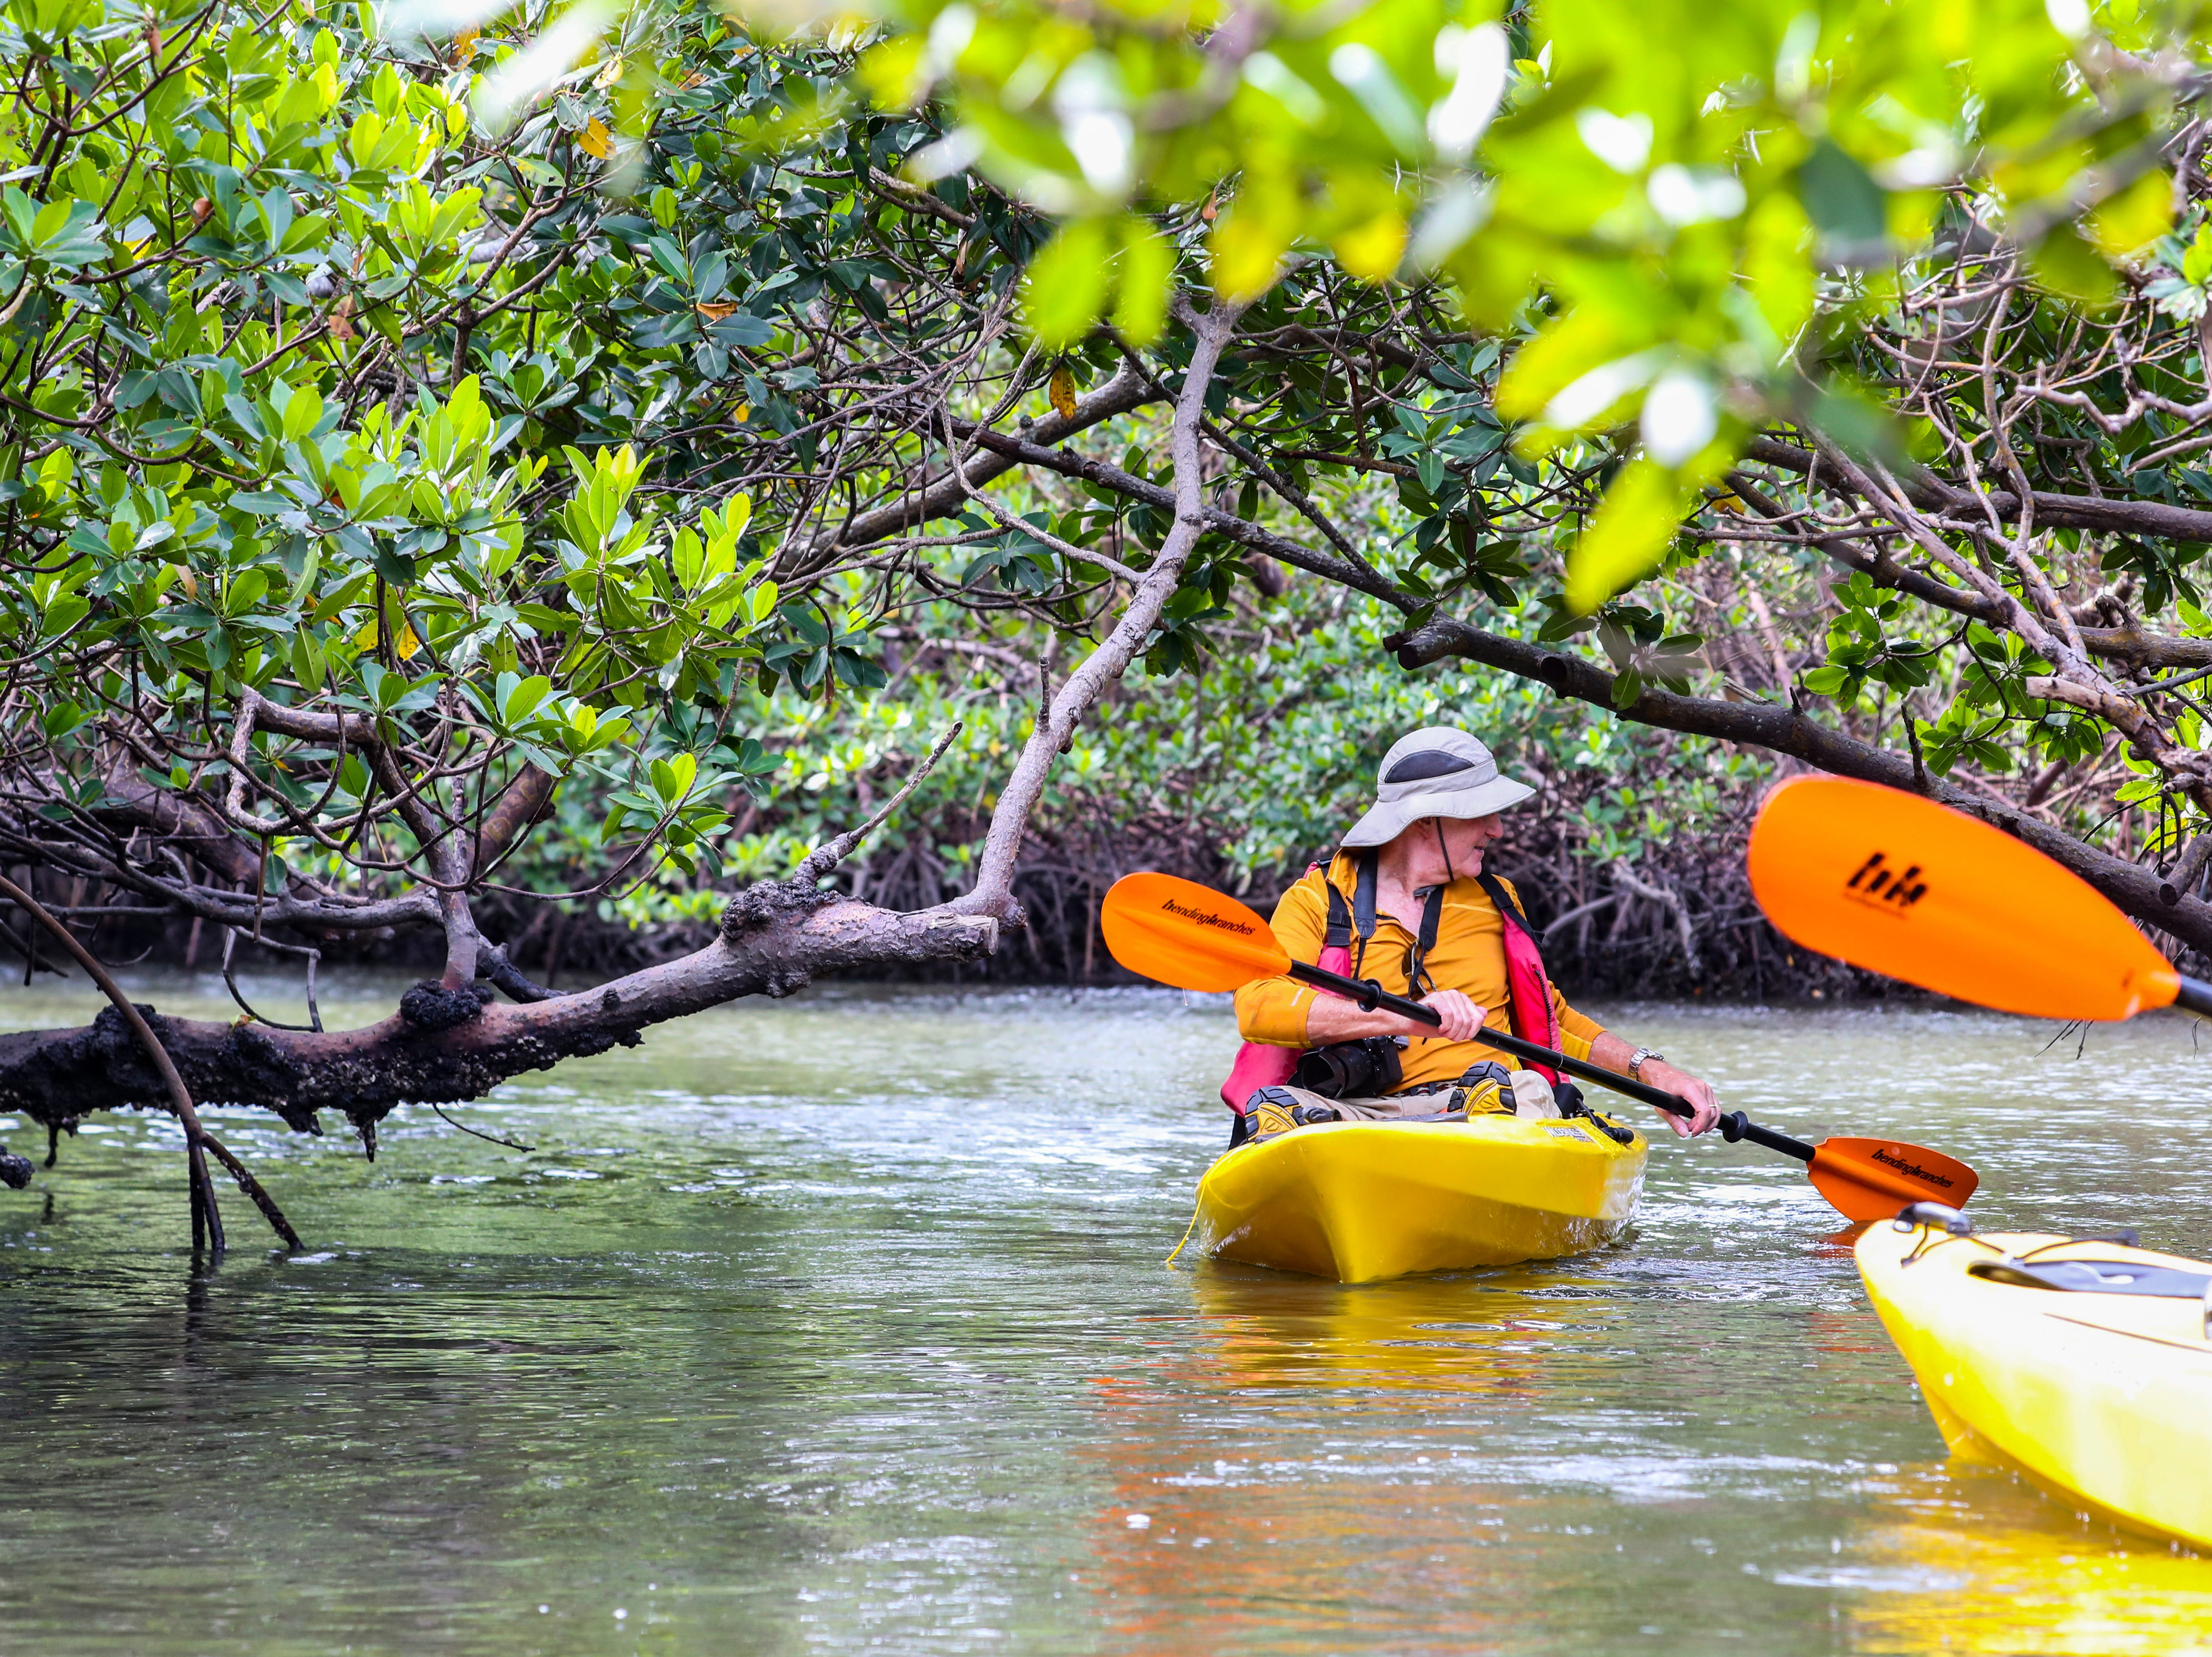 Martin Strasmore, of Naples and a friend of Rookery Bay, paddles through the mangrove canopy.  Rookery Bay National Estuarine Research Reserve in Naples offers a two-hour guided kayak tour of Rookery Bay. This tour provides an up-close and personal experience of this irreplaceable national treasure. Paddle through the shallows and maze like mangrove tunnels while learning about  surroundings from an experienced guide and naturalist. Randy McCormick, captain and guide, has worked at the Reserve for many years and knows the area intimately. He is a Certified Interpretive Guide, an instructor in the Florida Master Naturalist program and a fifth generation Floridian.